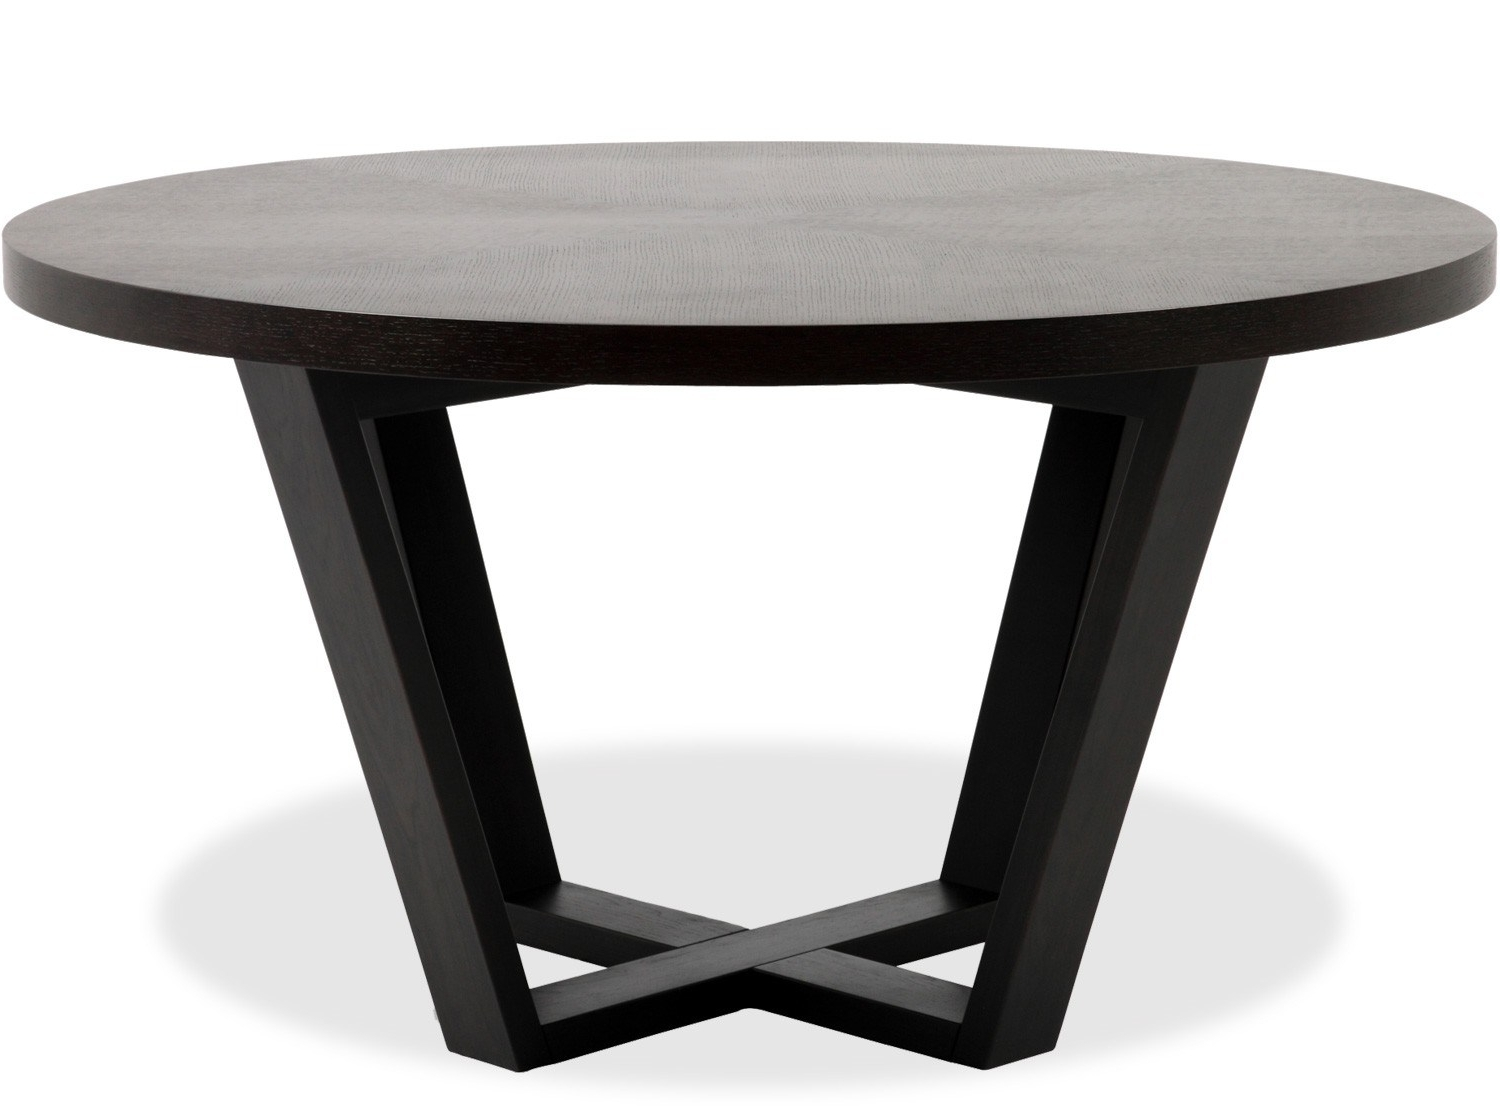 Newest Black Round Dining Table – Theradmommy Pertaining To Caira Black Round Dining Tables (View 19 of 25)